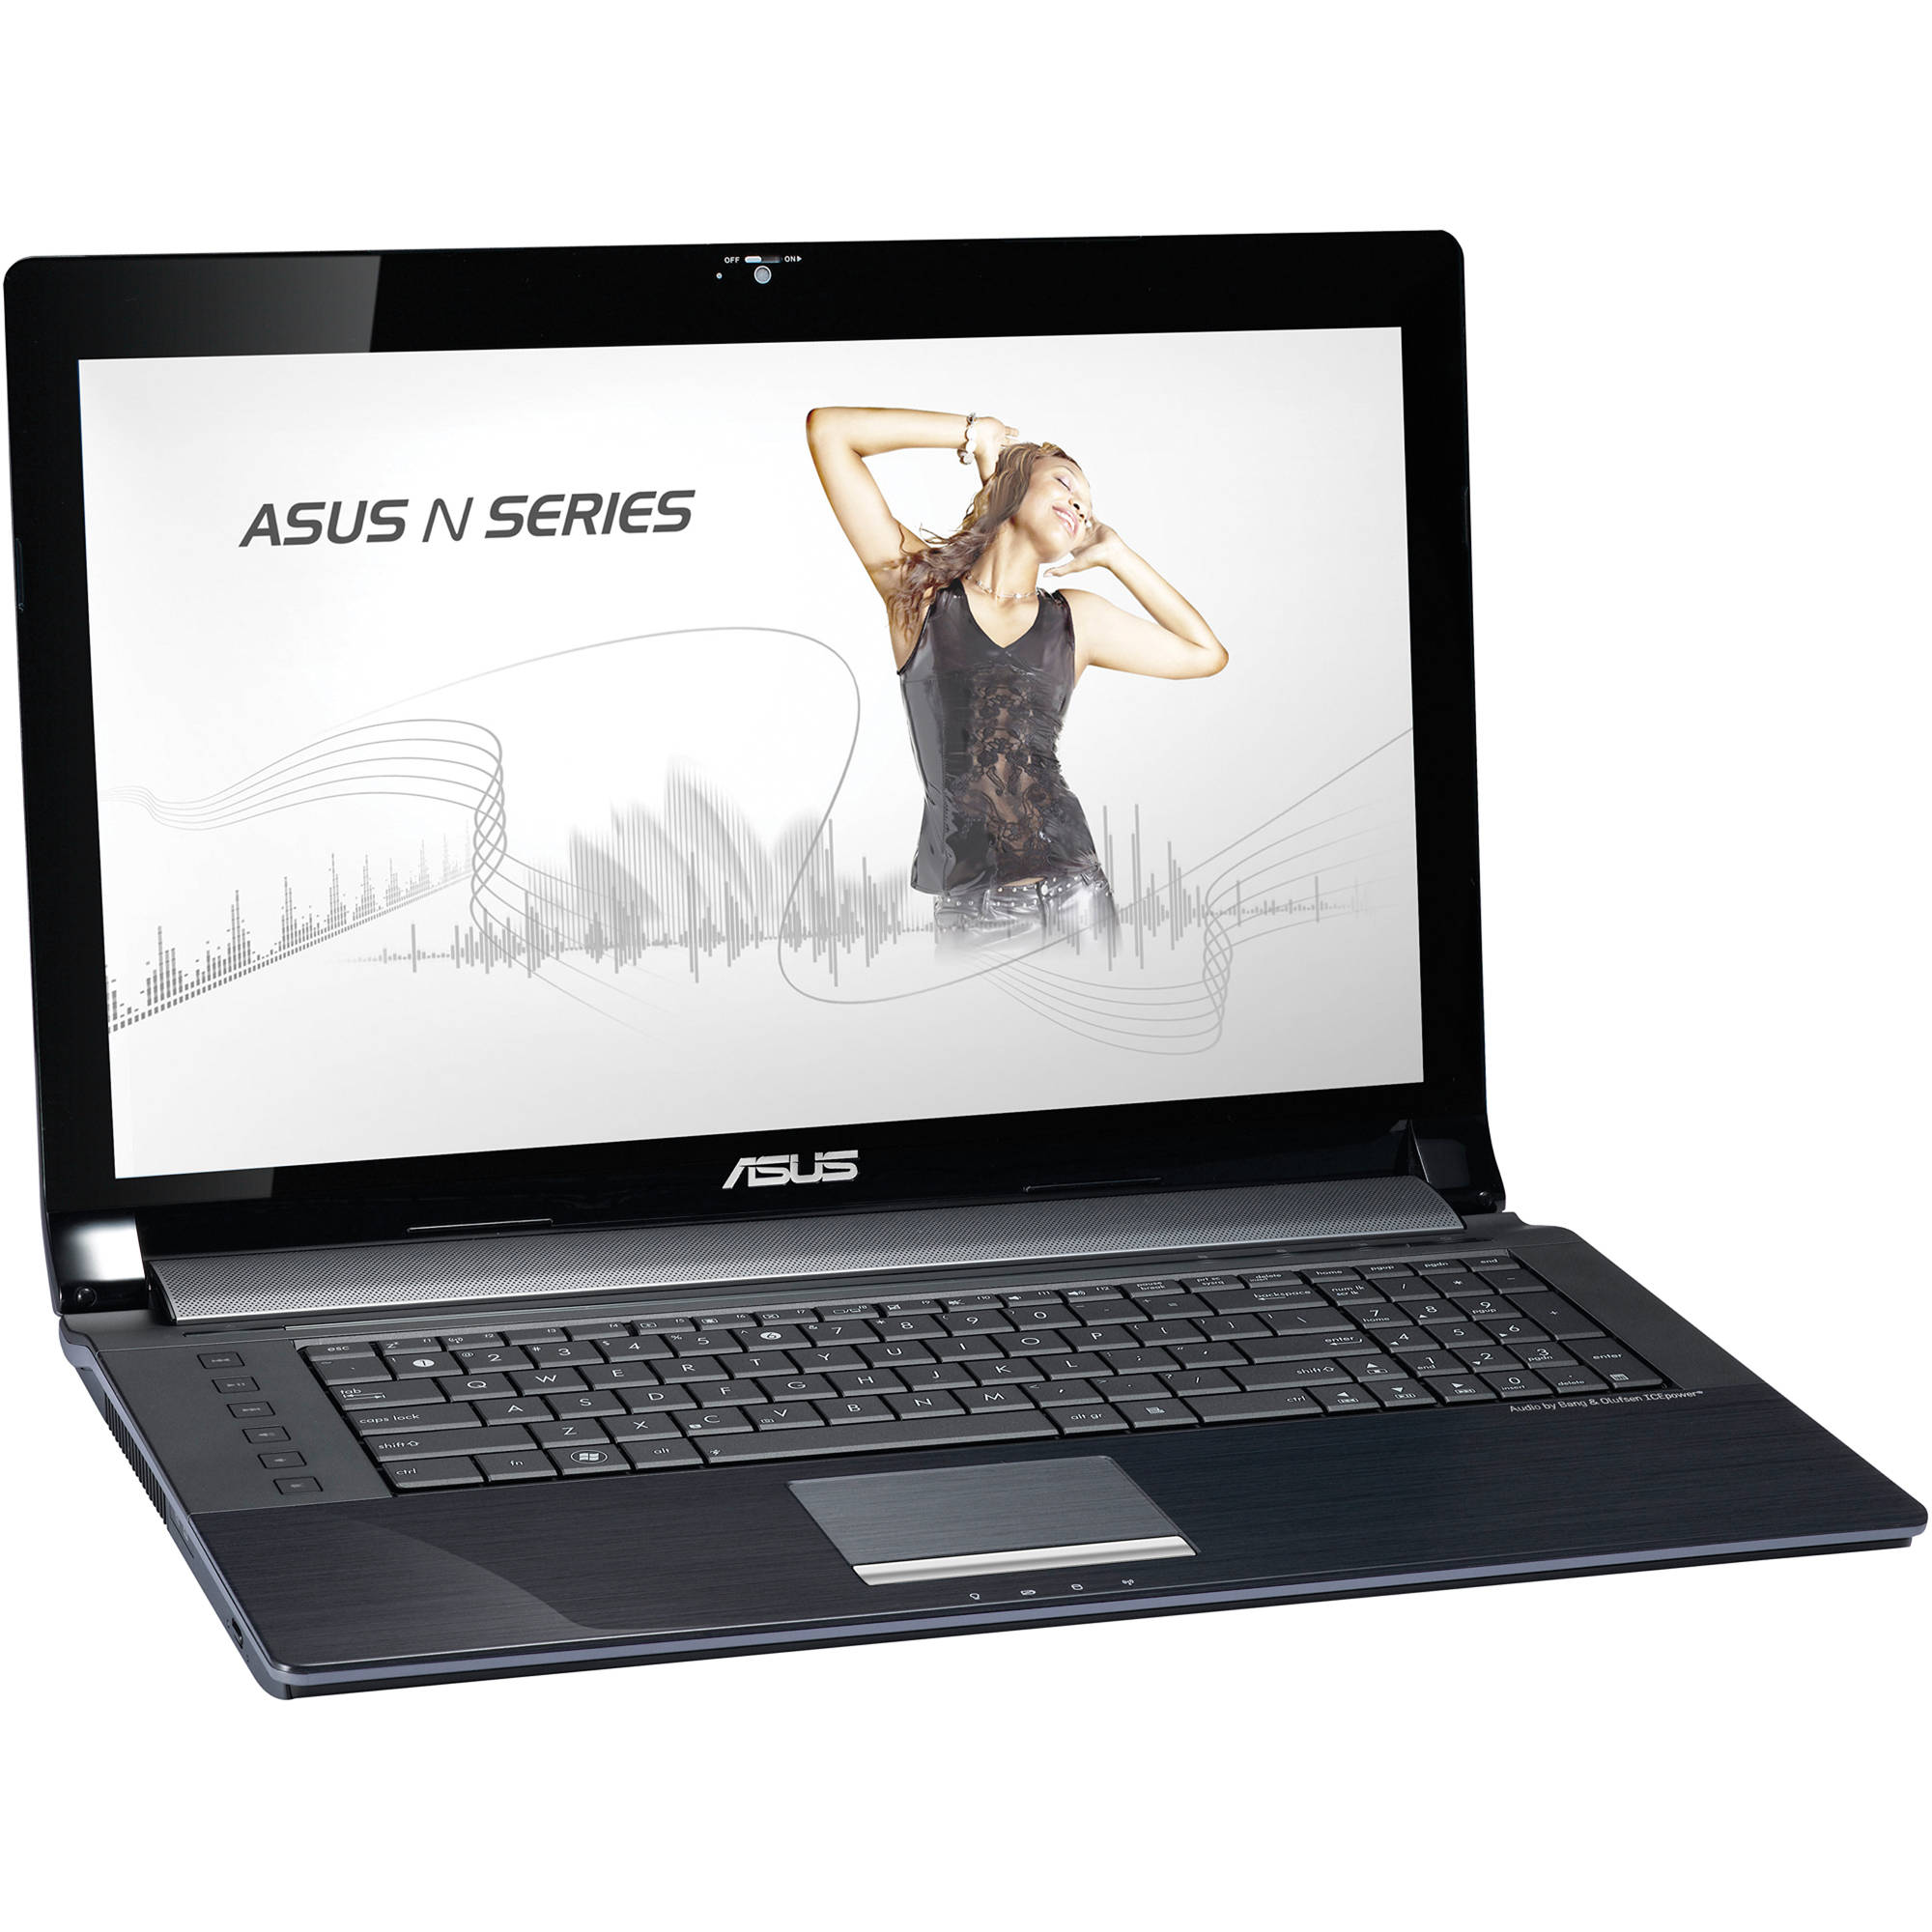 Asus U41SV Notebook Power4Gear Hybrid Download Drivers